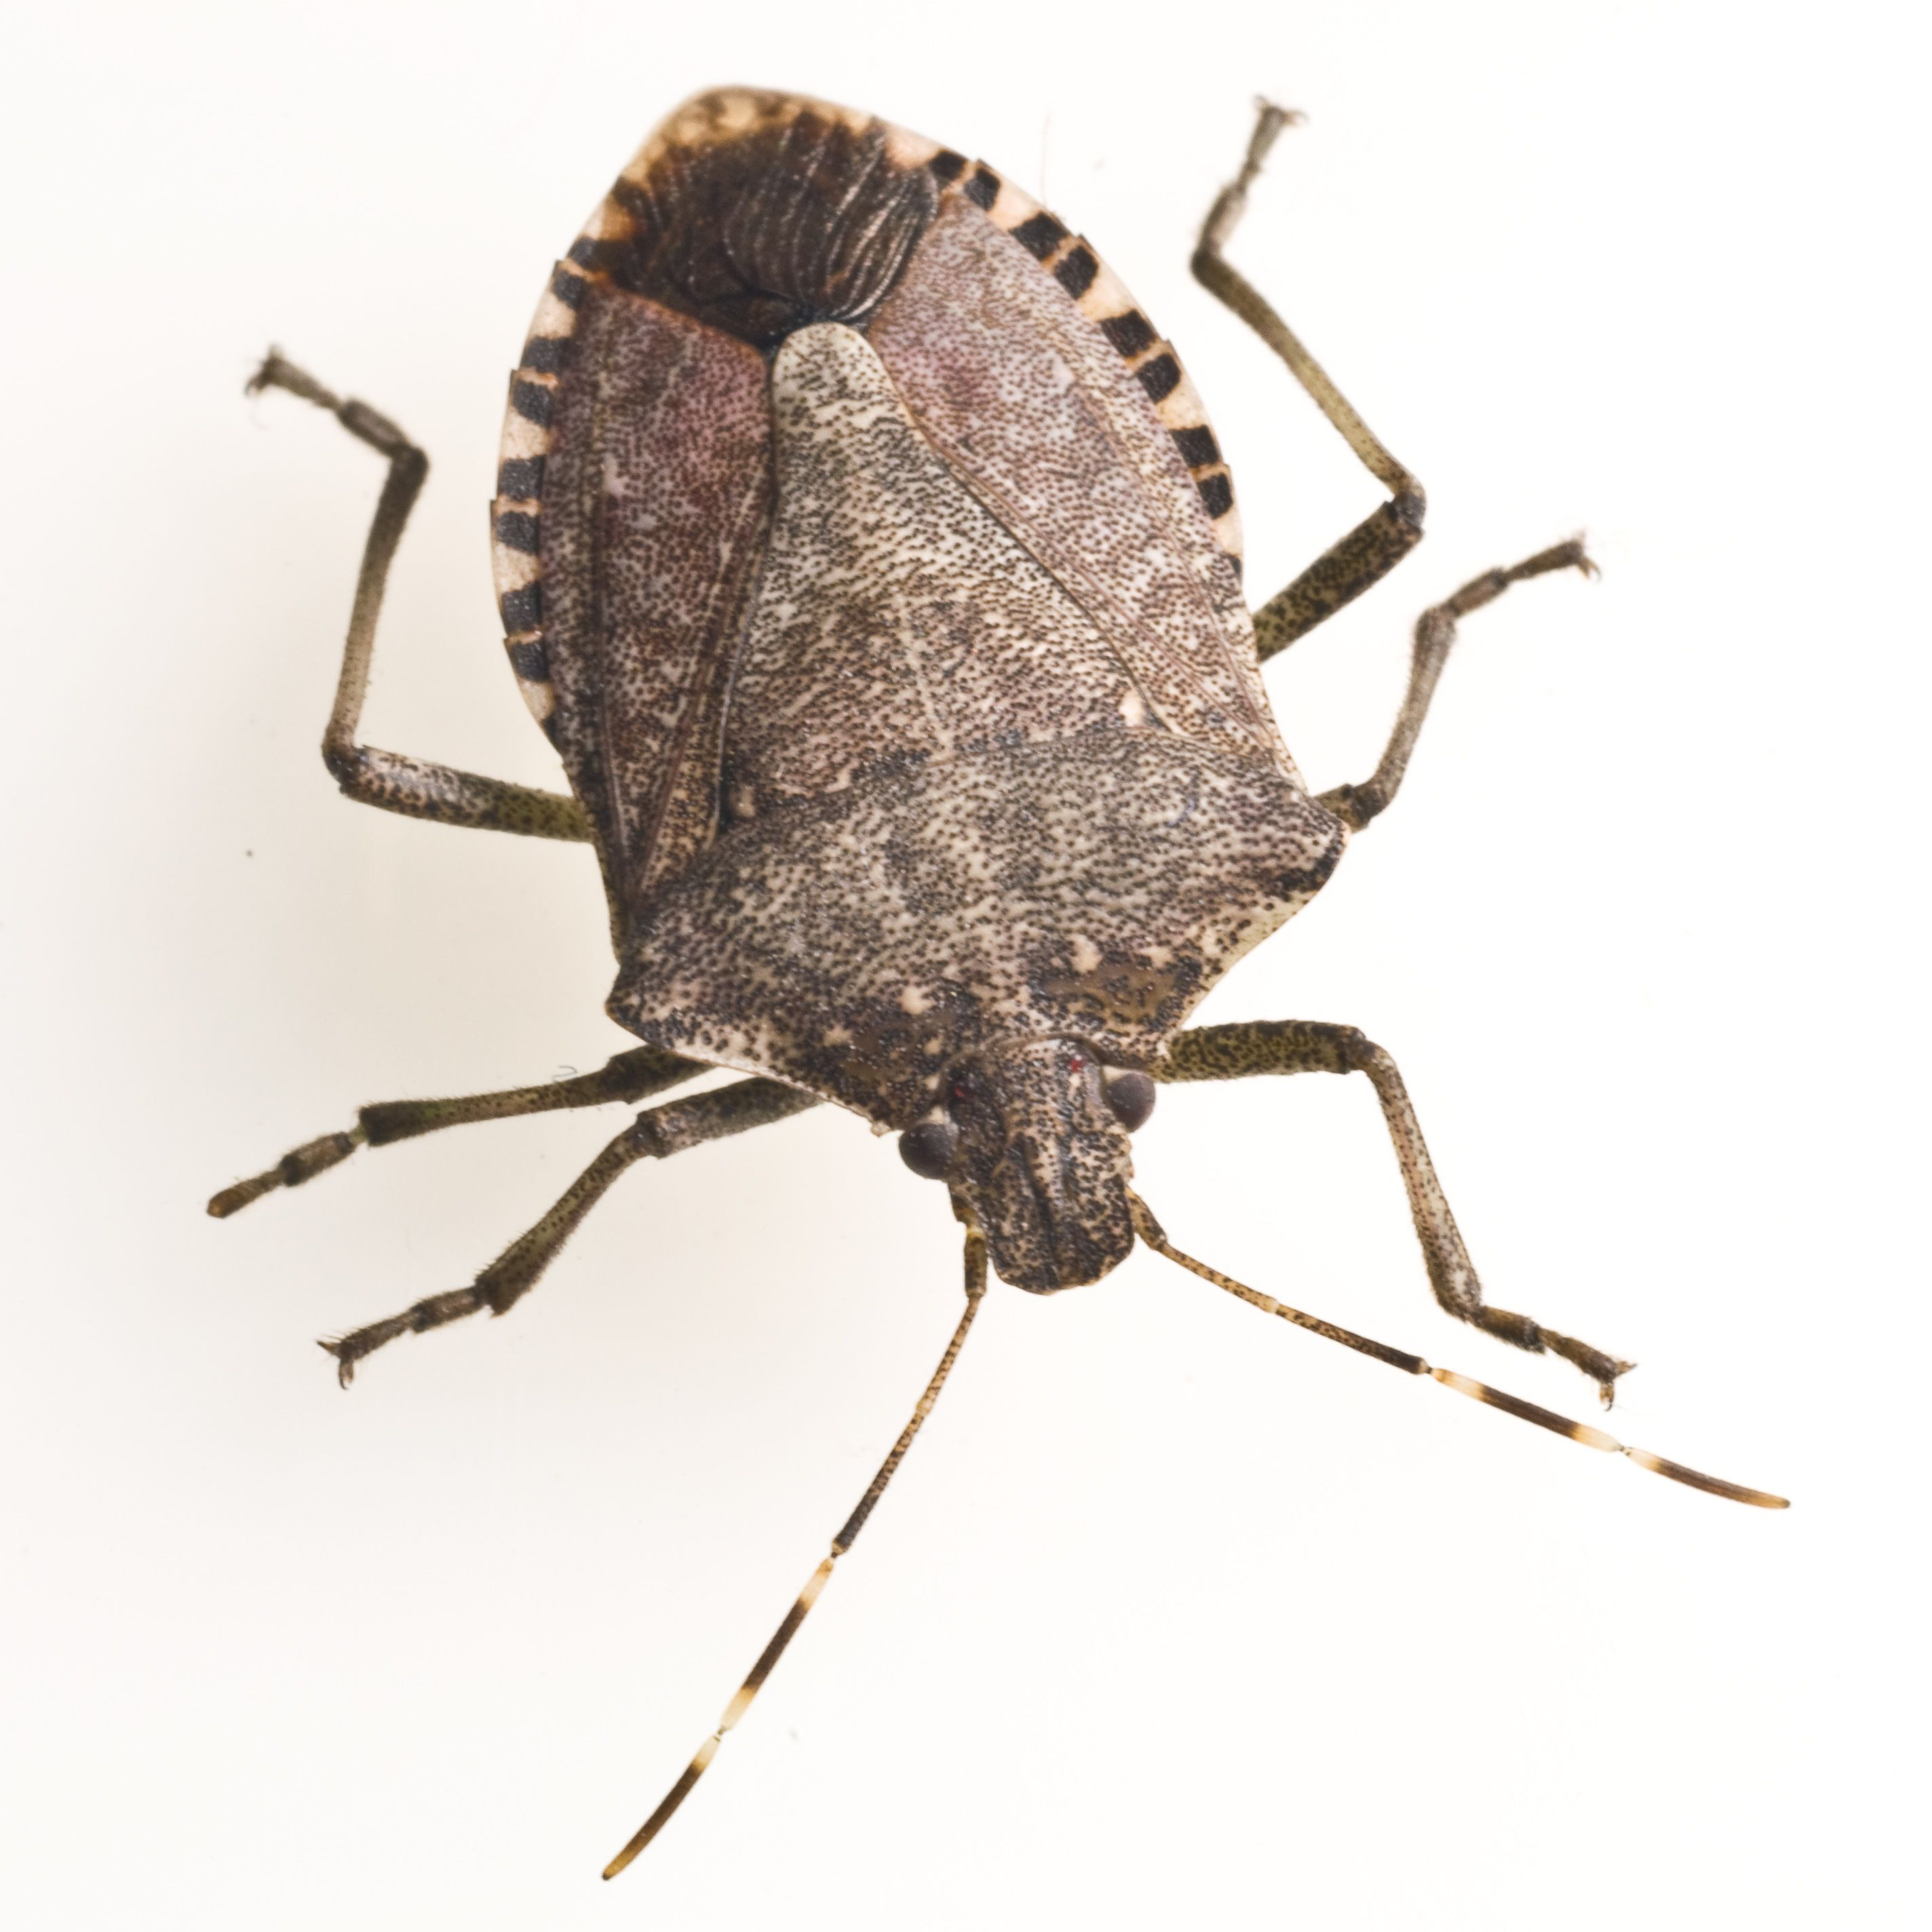 Types of Bugs with Pictures and Names  How to Prevent Bugs In House. Types of Bugs with Pictures and Names  How to Prevent Bugs In